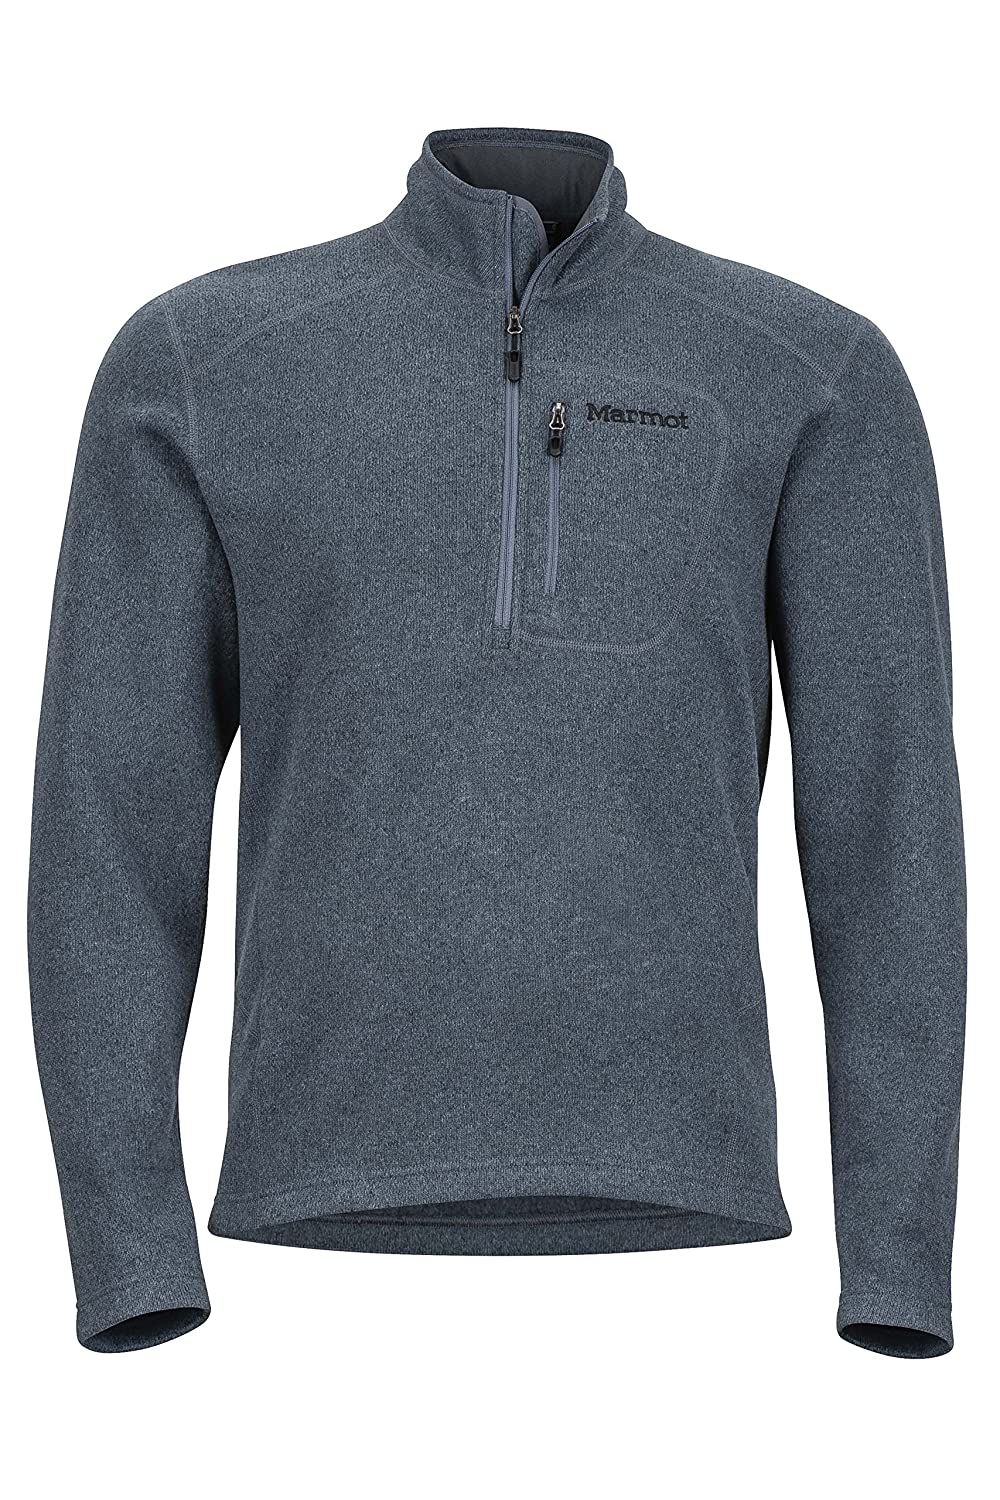 Marmot Herren 's Drop Line 1/2 Zip Long Sleeve Shirt